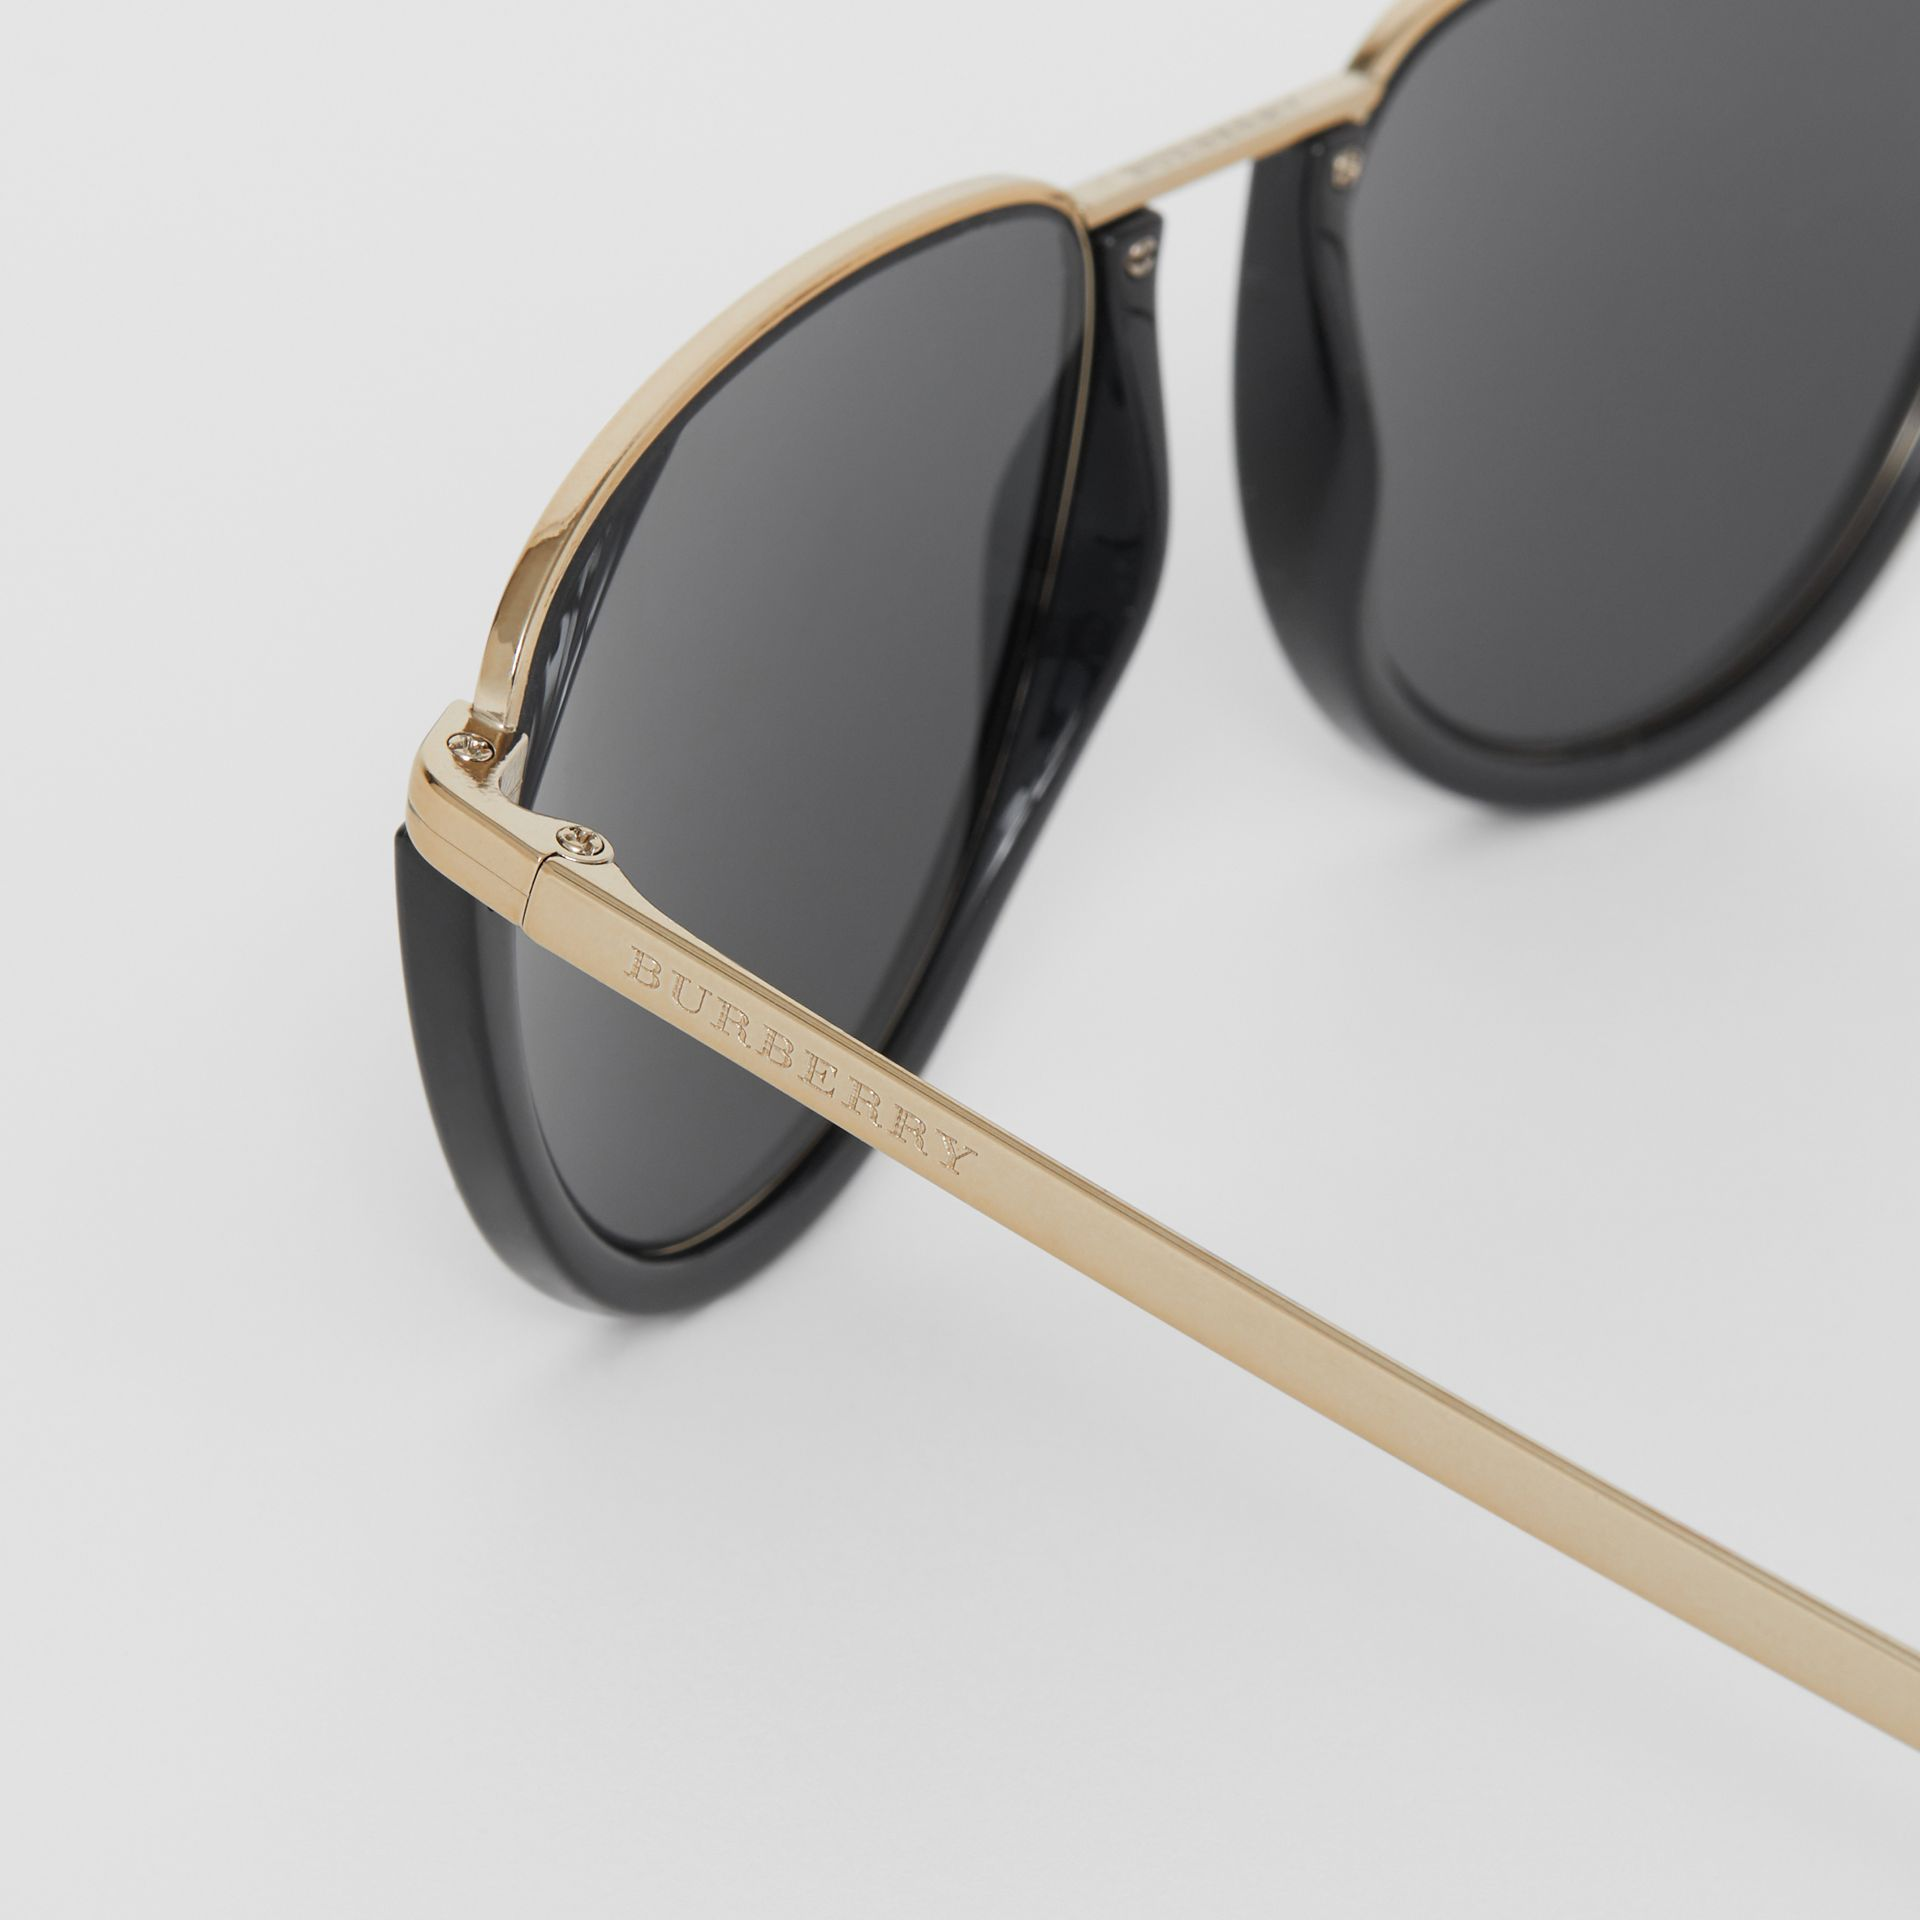 Half Moon Pilot Round Frame Sunglasses in Black - Women | Burberry Singapore - gallery image 1